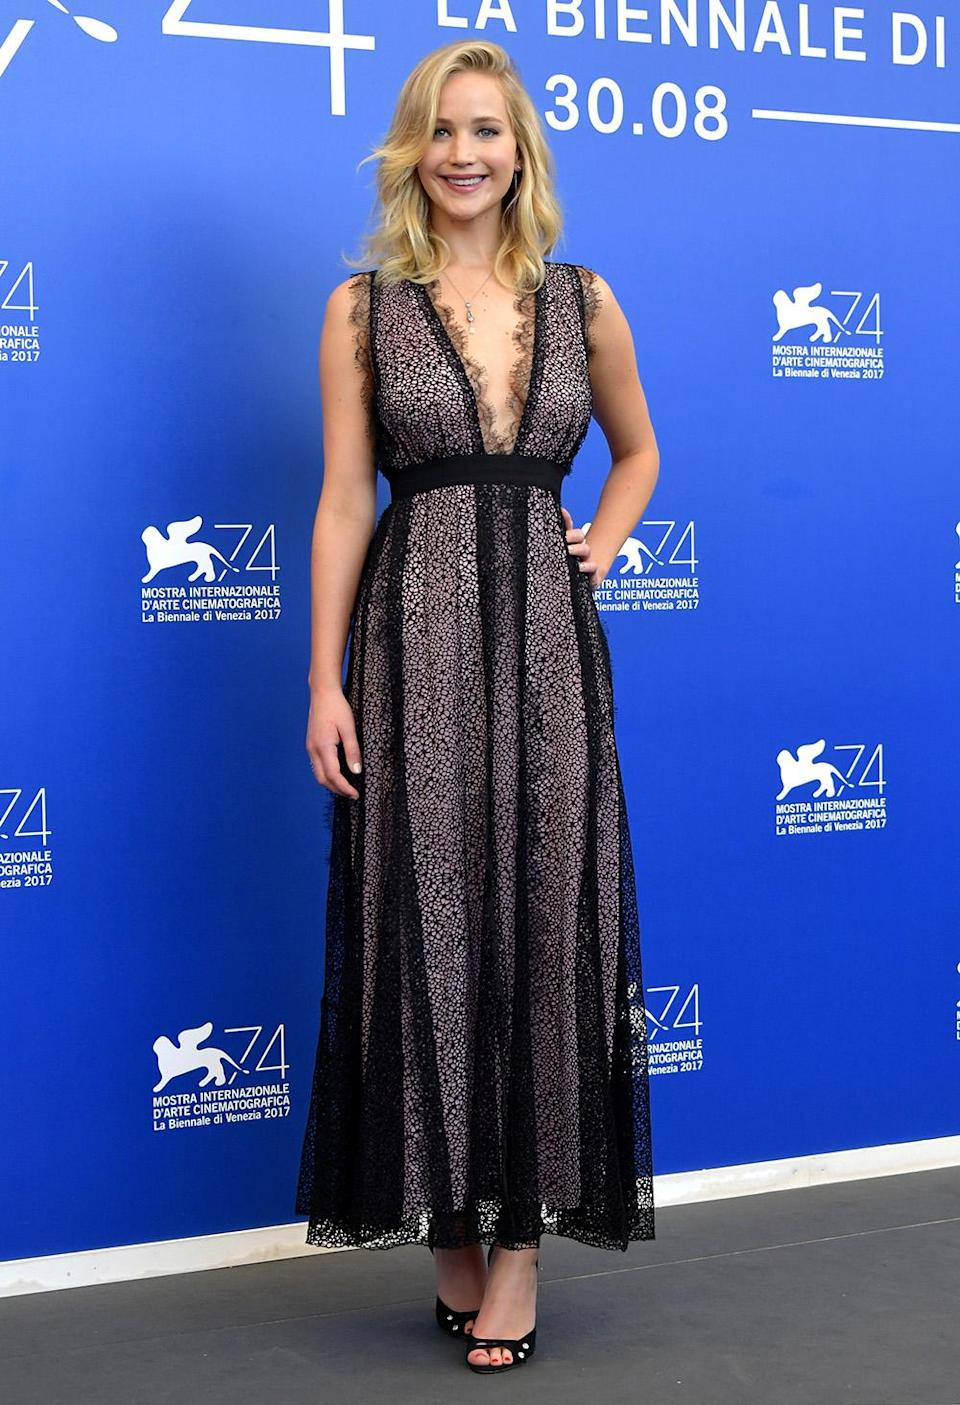 Lawrence rocked Giambattista Valli in Venice, Italy, on Sept. 5. (Photo by Dominique Charriau/WireImage)